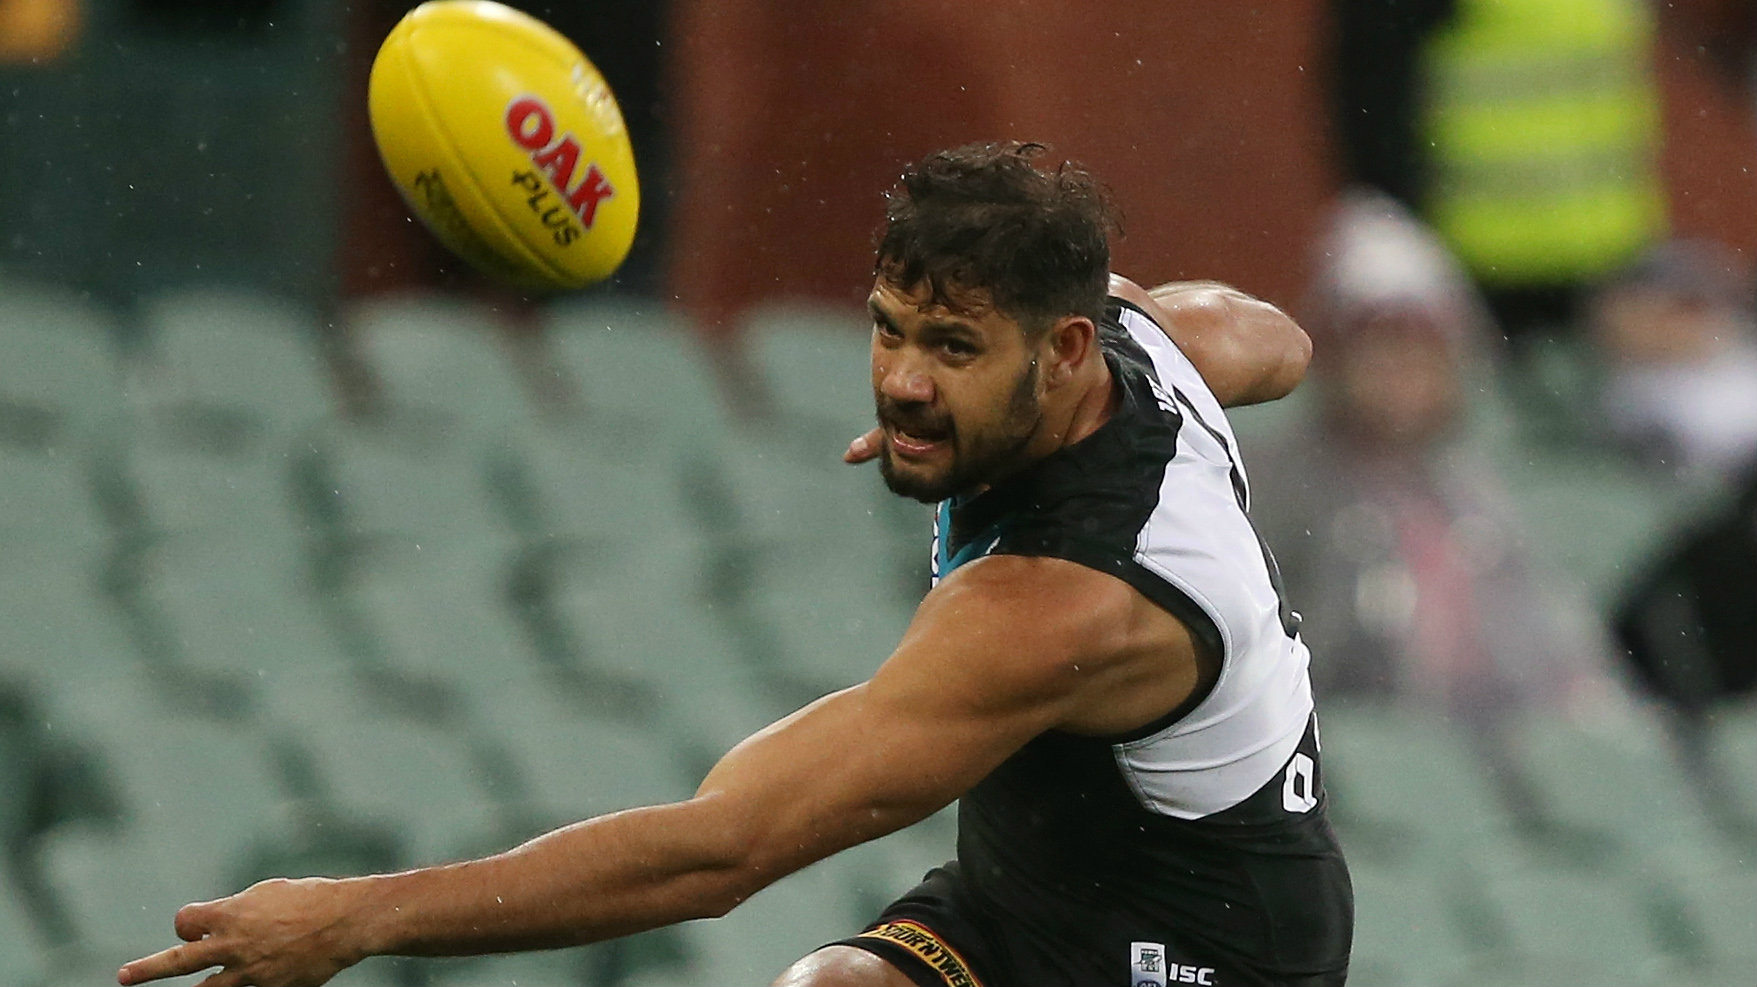 Paddy Ryder Stopped An Attempted Robbery In His House Last Night